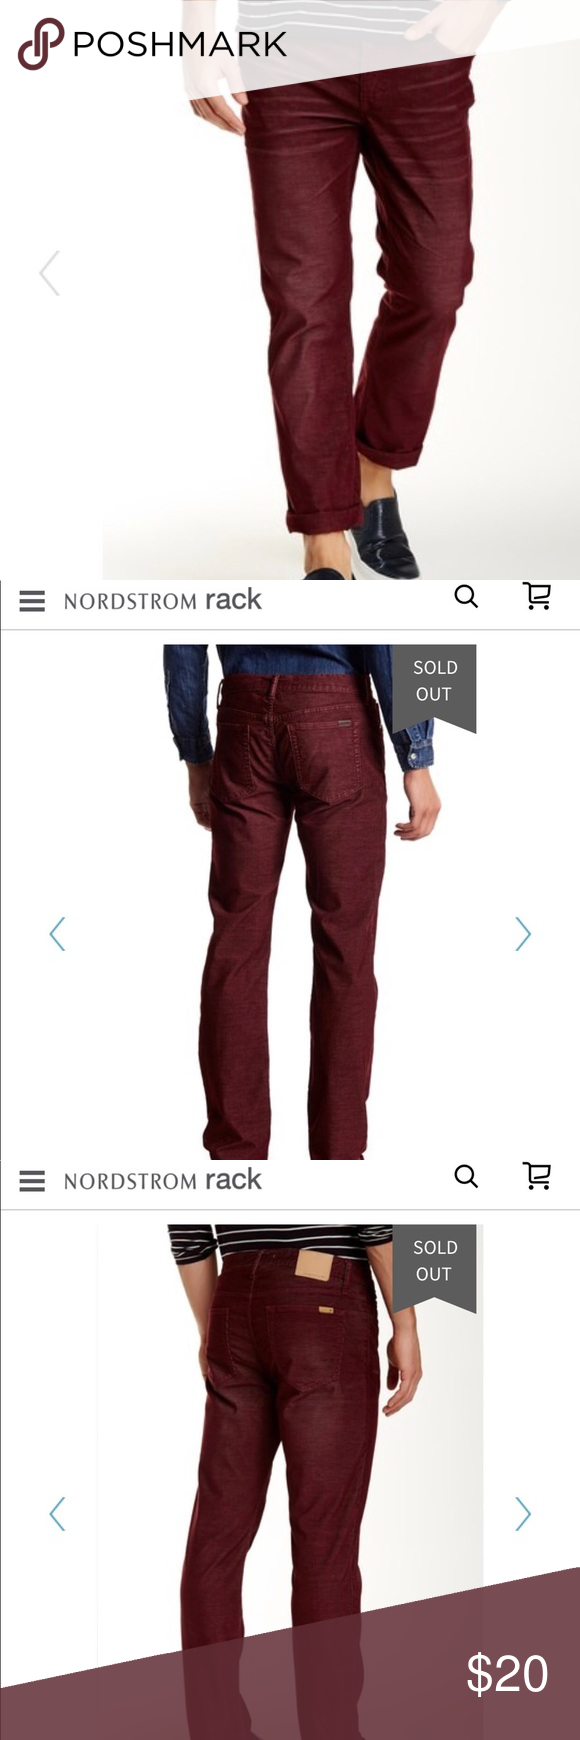 Joe S Jeans The Brixton Slim And Narrow Cords The Brixton In Aubergine Offers The Ideal Balance Of Style And Comfort In Ga Lightweight Pants Joes Jeans Fashion